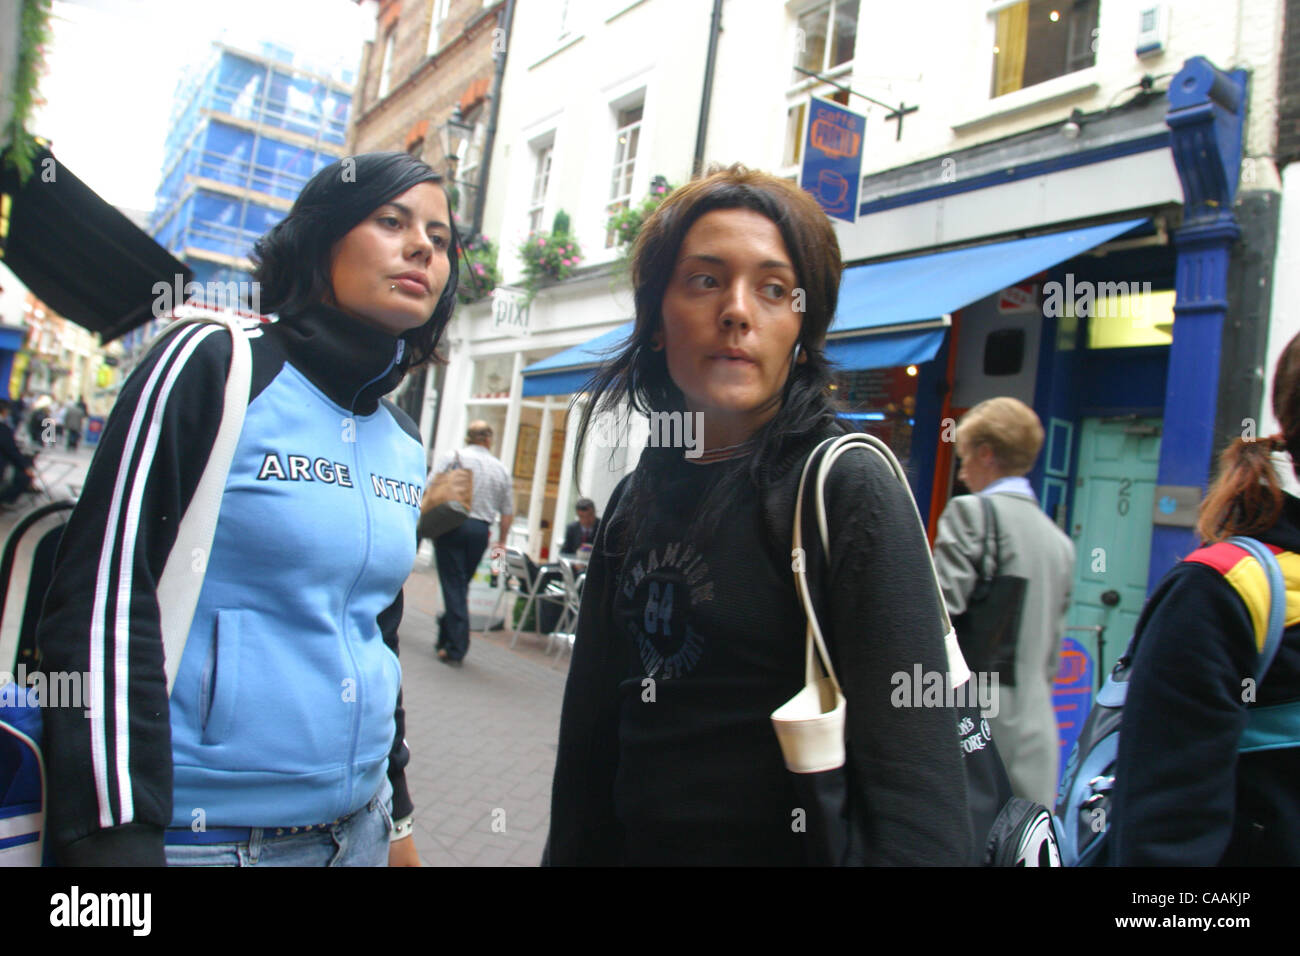 Sep 25 2003 London UK Trendy Young Londoners 2 Girls Hanging Out In The Streets Shopping Smoking And Having A Good Time Soho Is To What